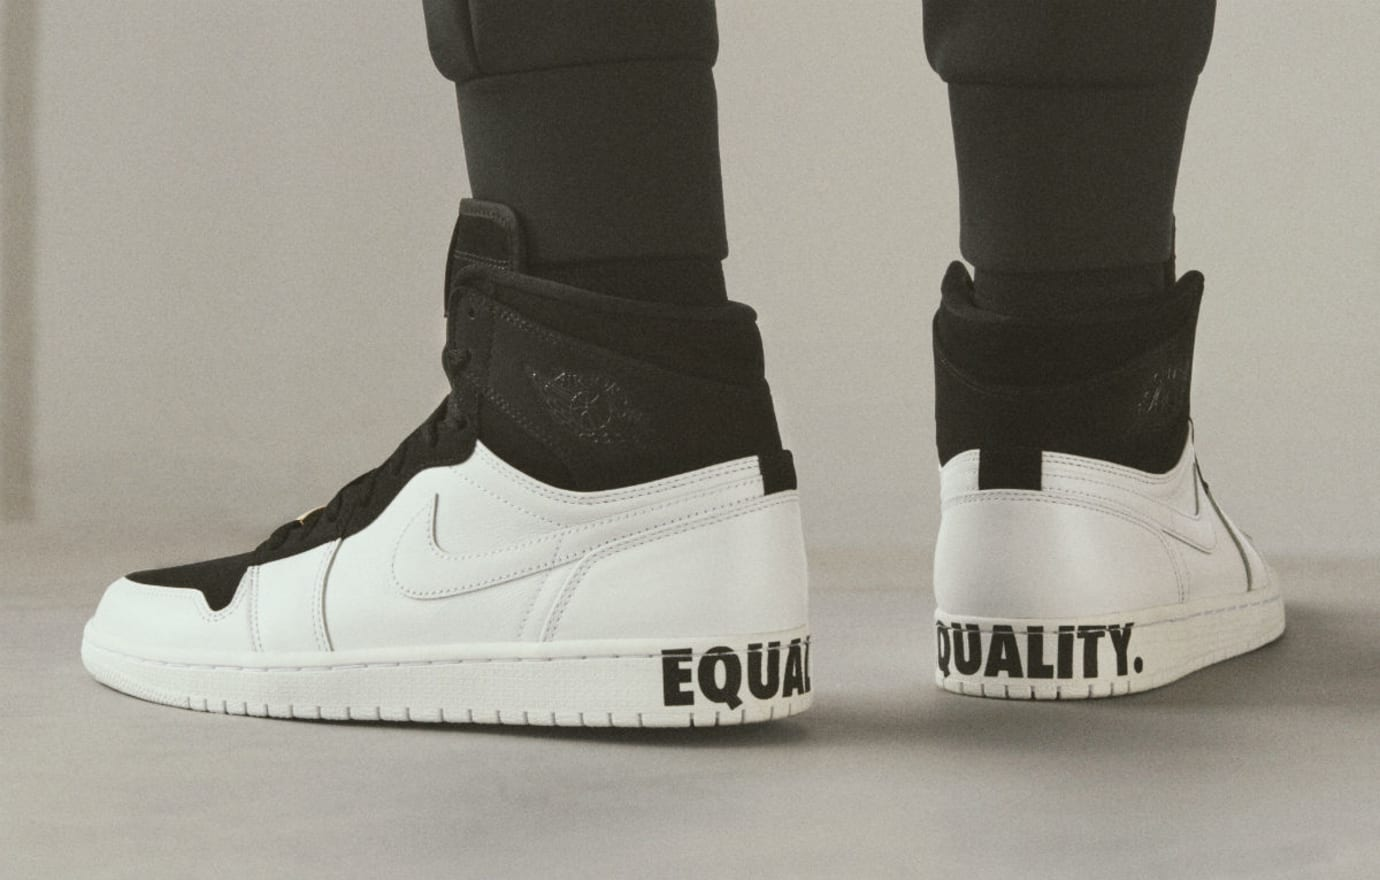 bd85fc903ebbd4 2018 Nike BHM Black History Month Equality Collection